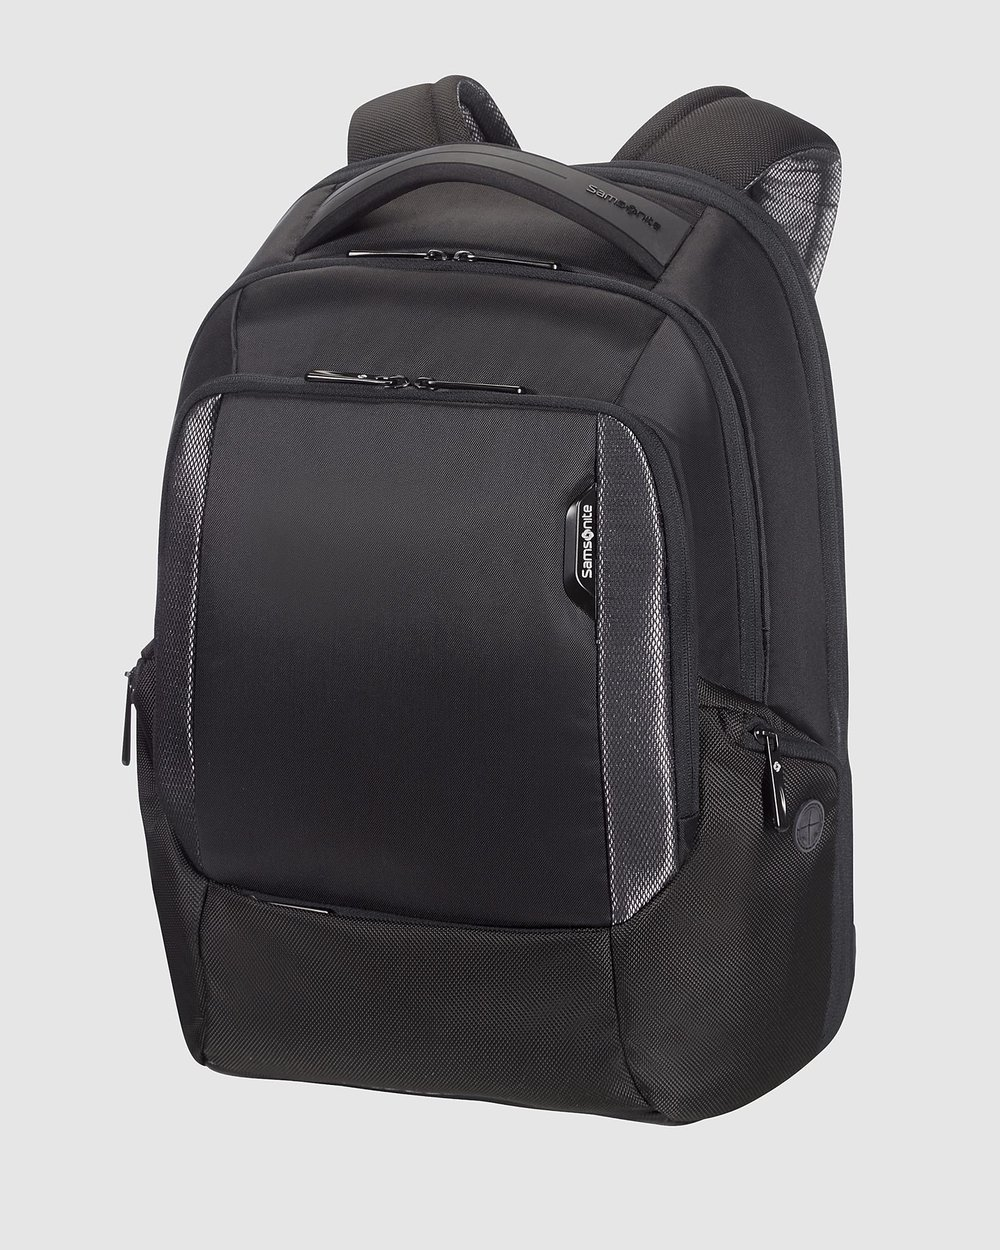 Cityscape Tech Laptop Backpack by Samsonite Business Online  0a203e55301bc